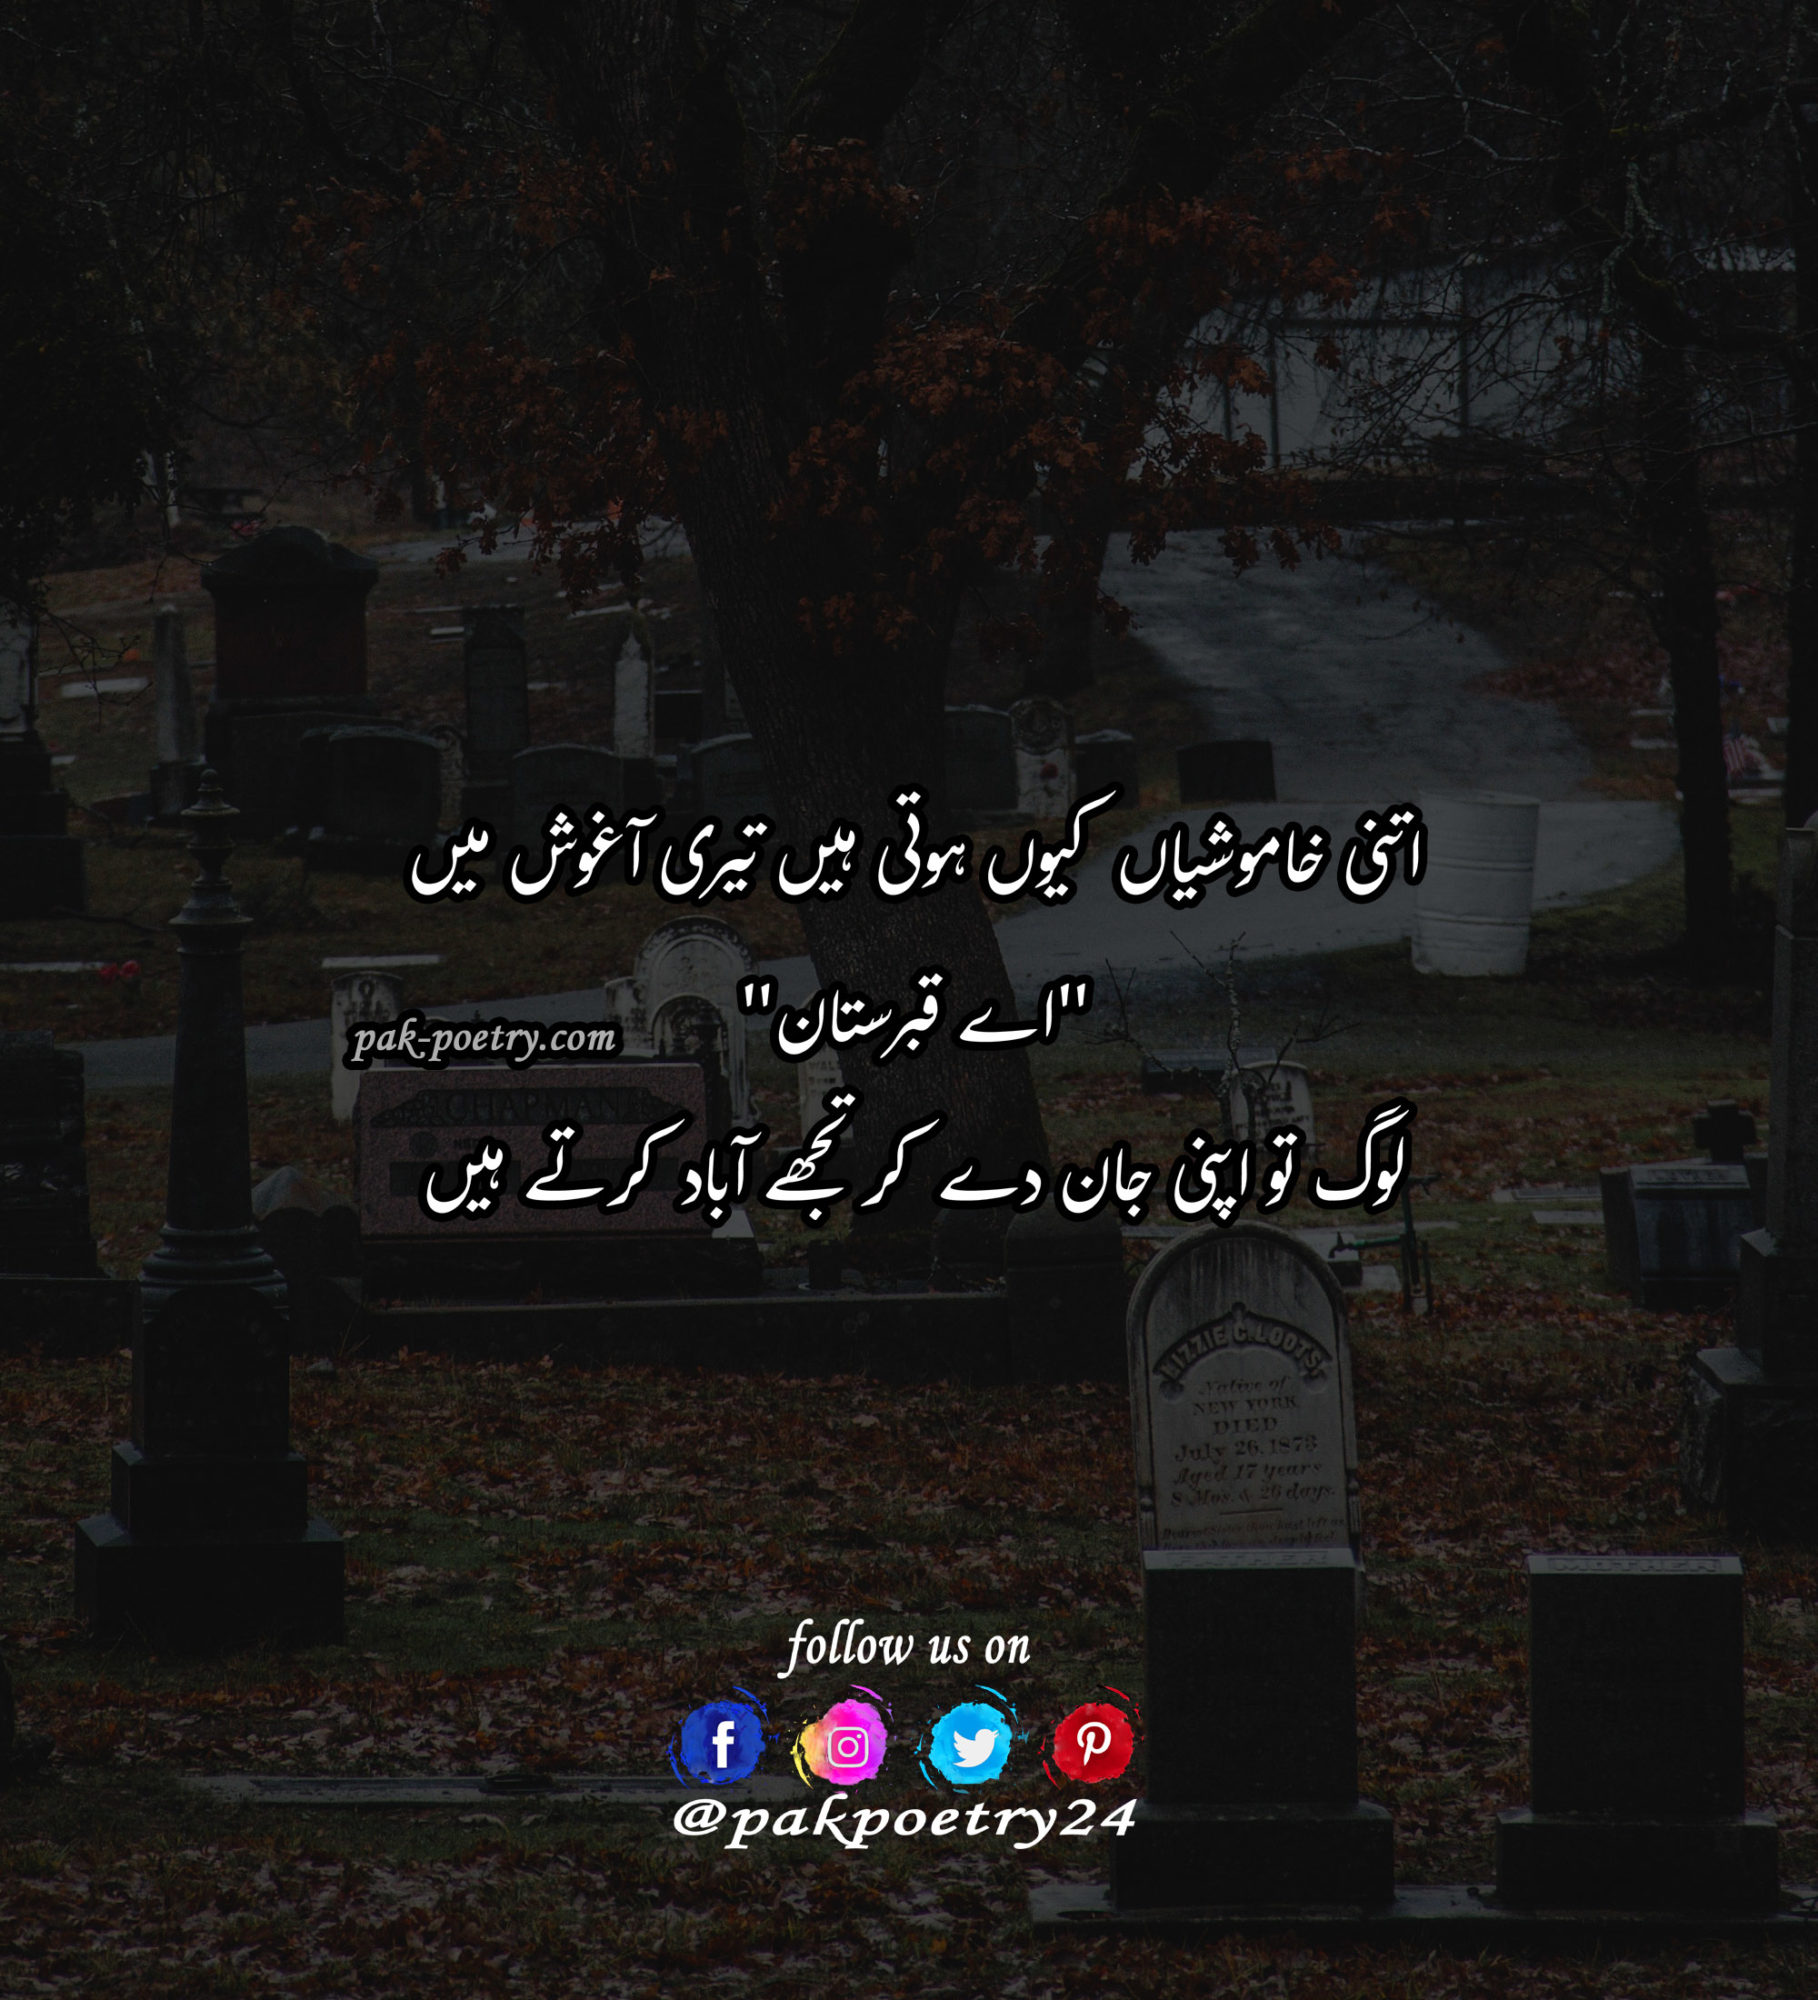 Sad poetry, sad poetry in urdu, poetry sad, sad poetry urdu, urdu sad poetry, sad poetry pics, poetry in urdu sad, Poetry in urdu, urdu poetry, poetry urdu, reality poetry, reality poetry in urdu, reality poetry urdu,